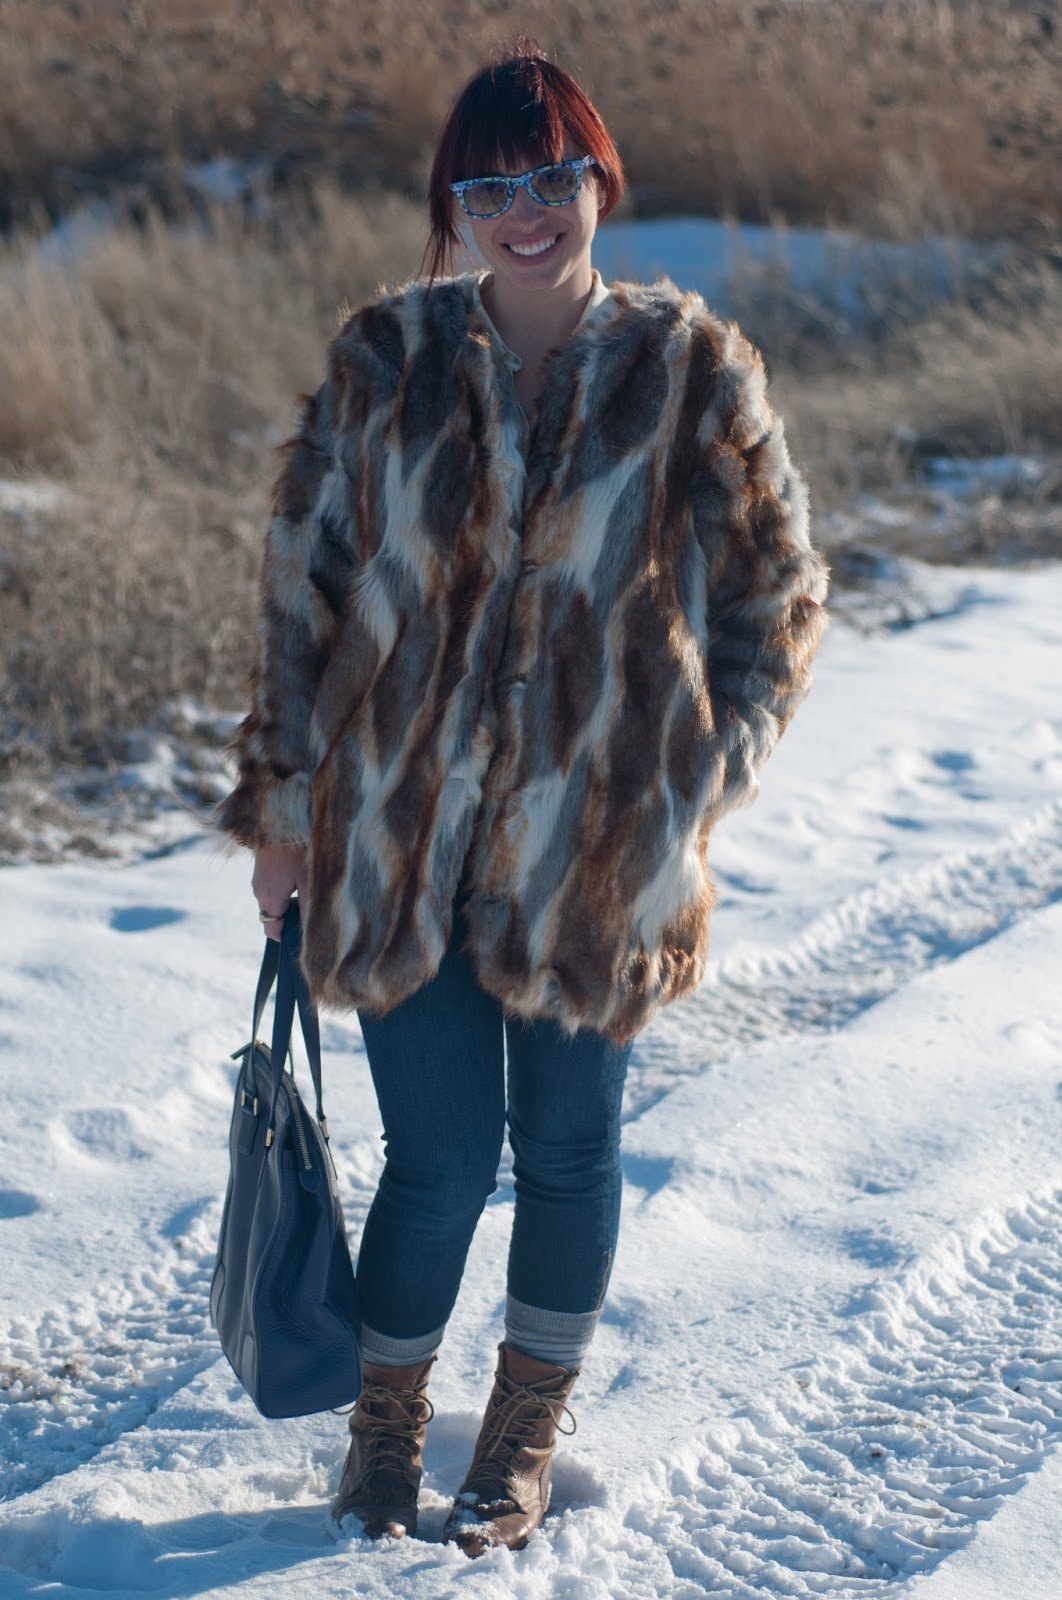 fashion blog, fashion blogger, style blog, mens fashion blog, mens style blog, womens fashion blog, anthropolgie ootd, ootd, ootd blog, mens style, floral, ray ban, floral ray bans, rayban wayfer, faux fur, asos, tory burch, boots, steven madden boots, tory burch purse